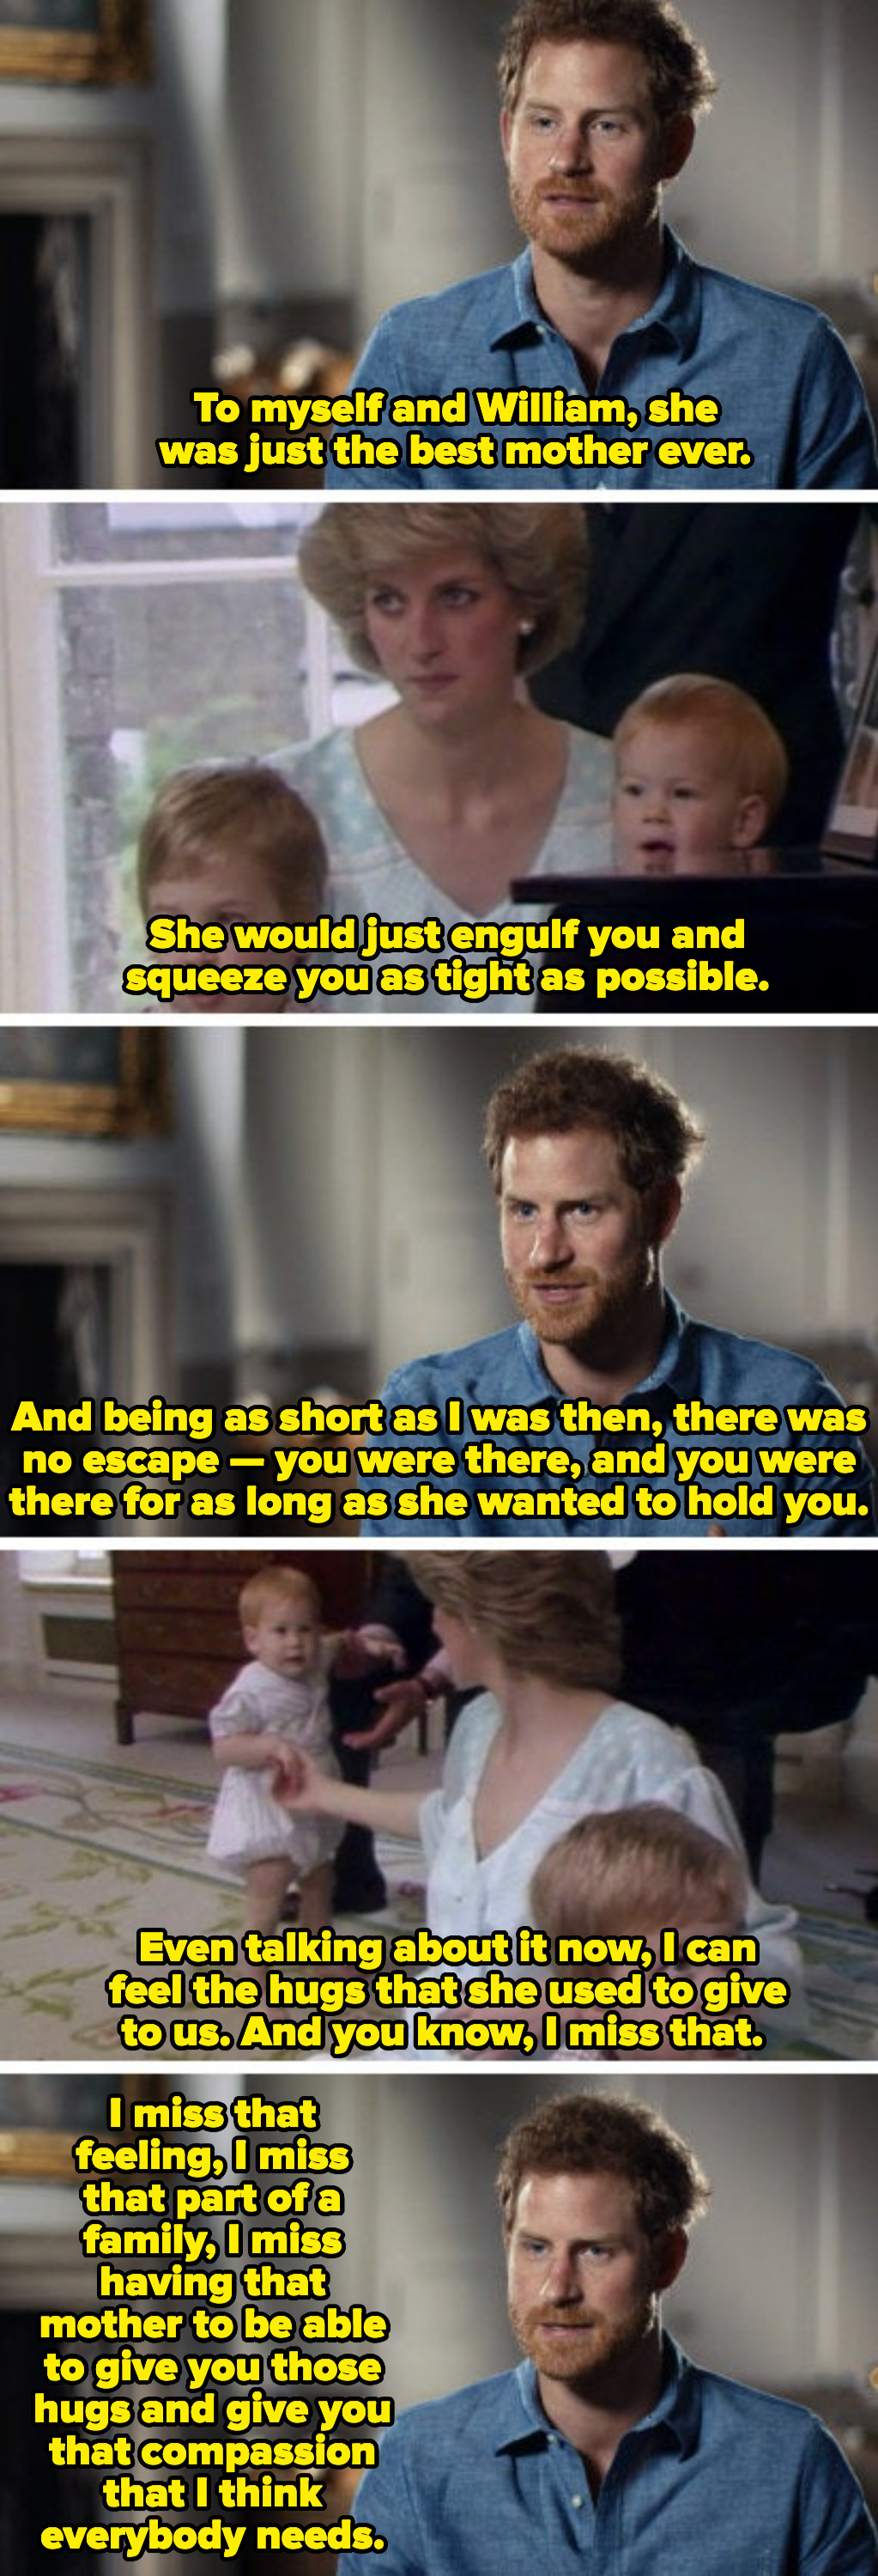 """Prince Harry talking about missing his mother, Princess Diana's, hugs: """"I miss that feeling, I miss that part of a family, I miss having that mother to be able to give you those hugs and give you that compassion"""""""